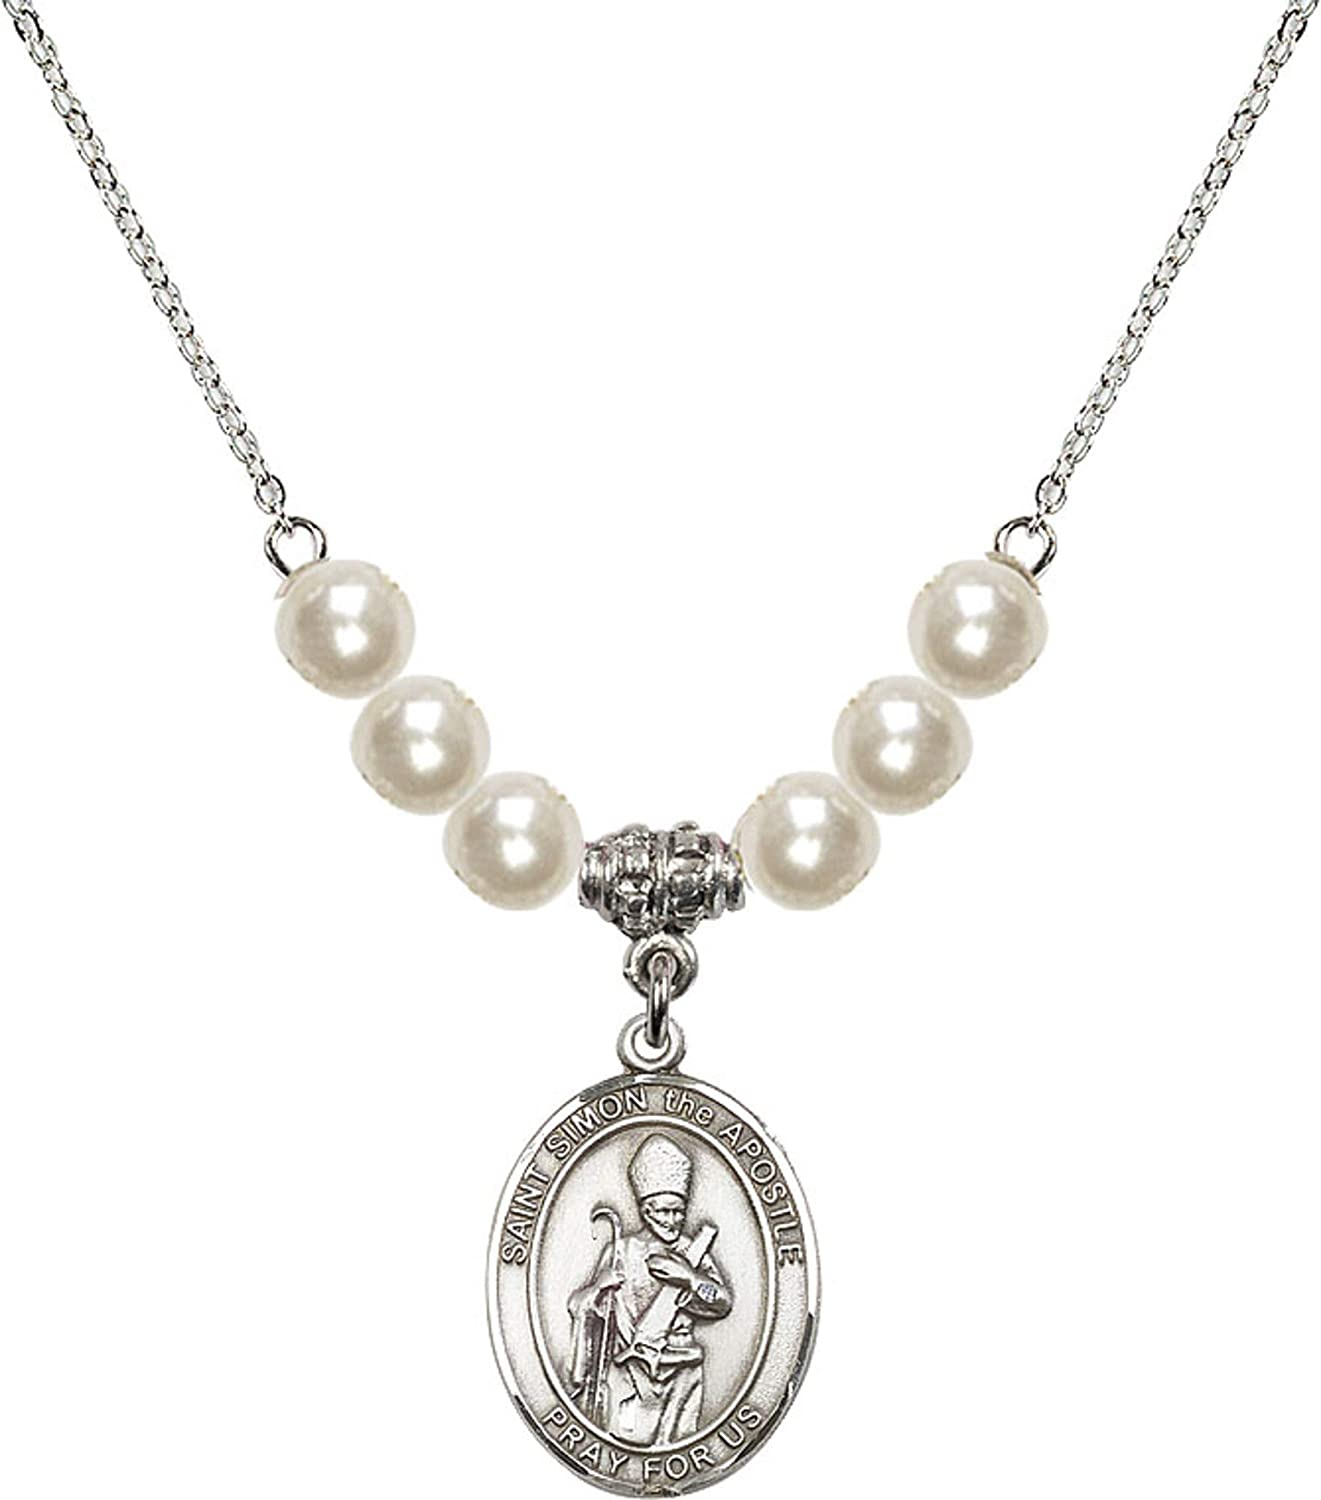 Bonyak Jewelry 18 Inch Rhodium Plated Necklace w// 6mm Faux-Pearl Beads and Saint Simon The Apostle Charm